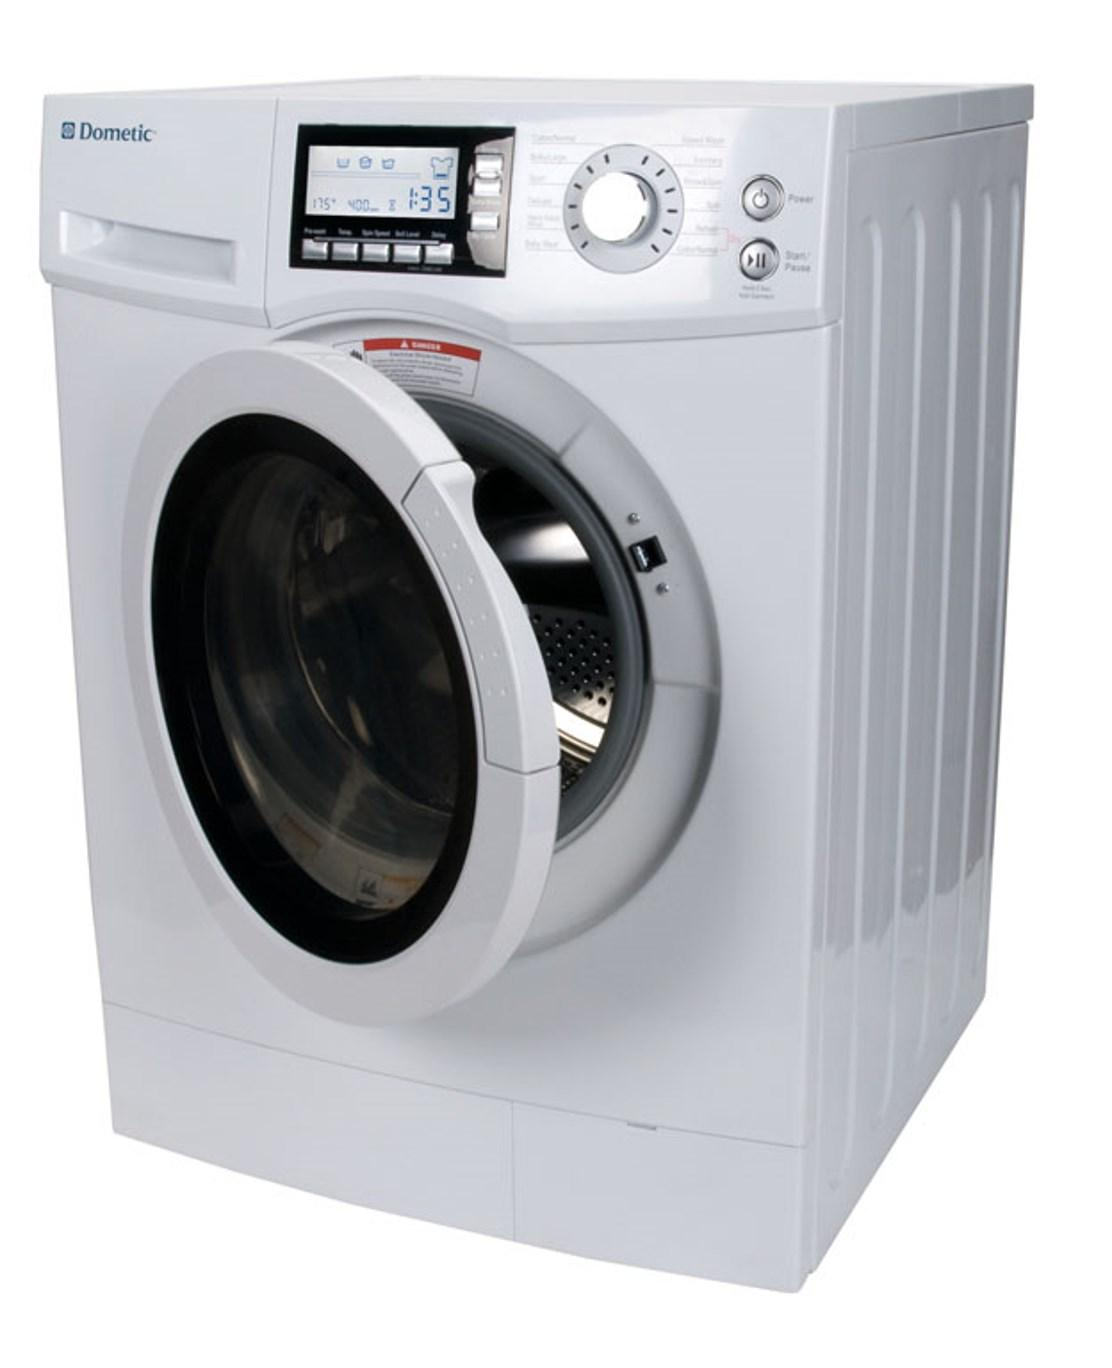 Washer Sink Combo : dometic ventless washer dryer combo the ventless washer dryer combo ...